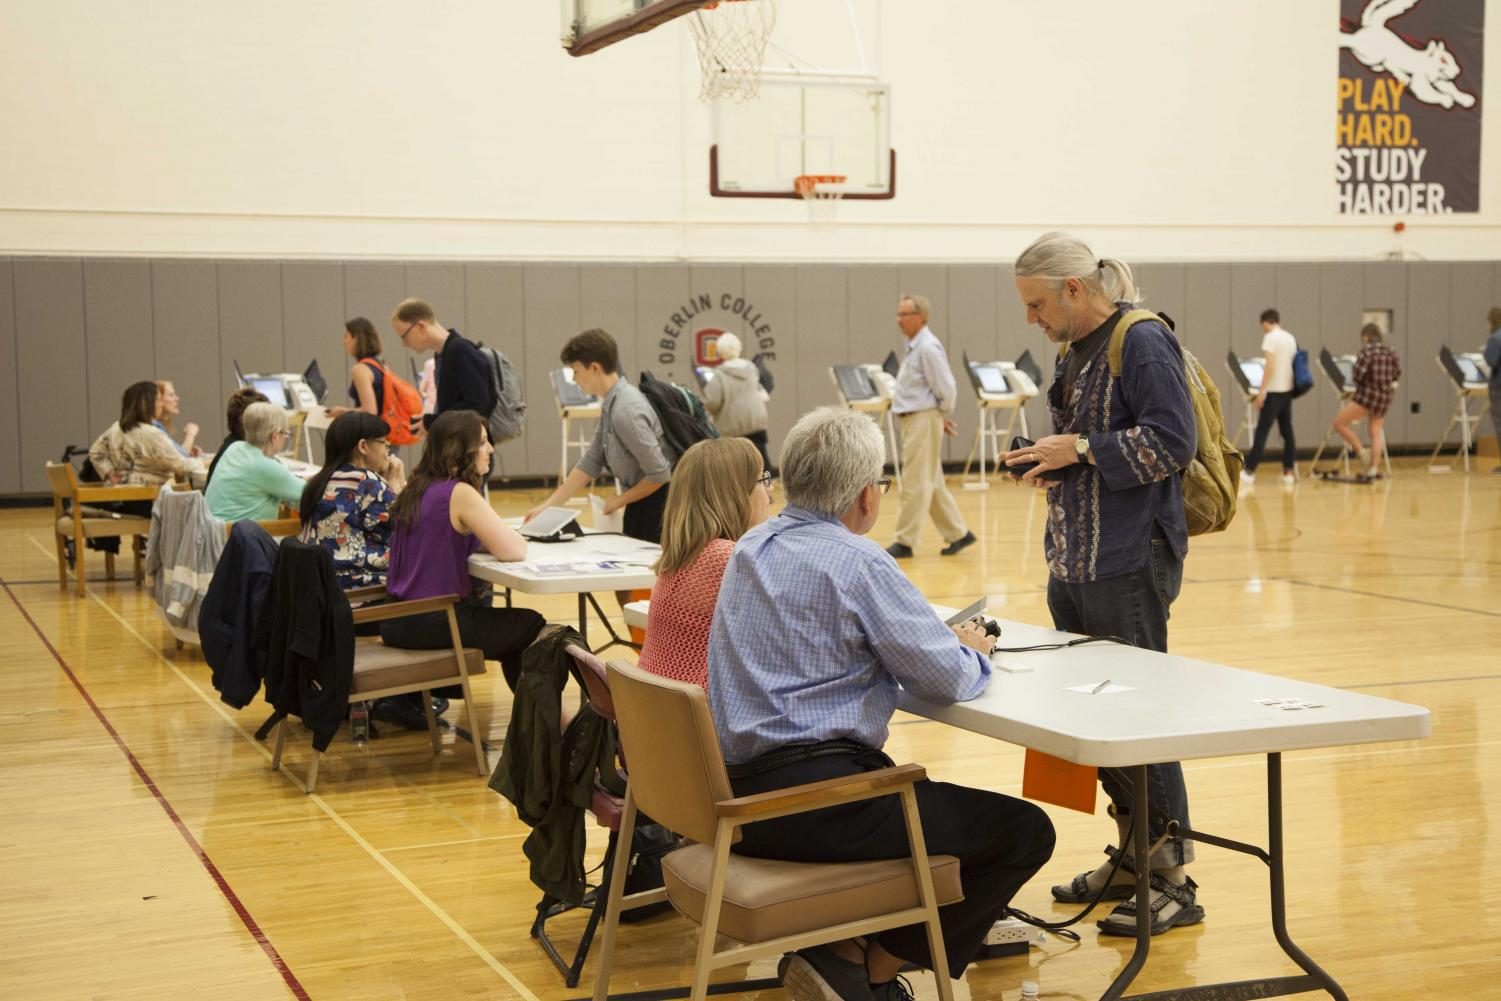 A community member picks up their ballot at Tuesday's primary election in Philips gym.